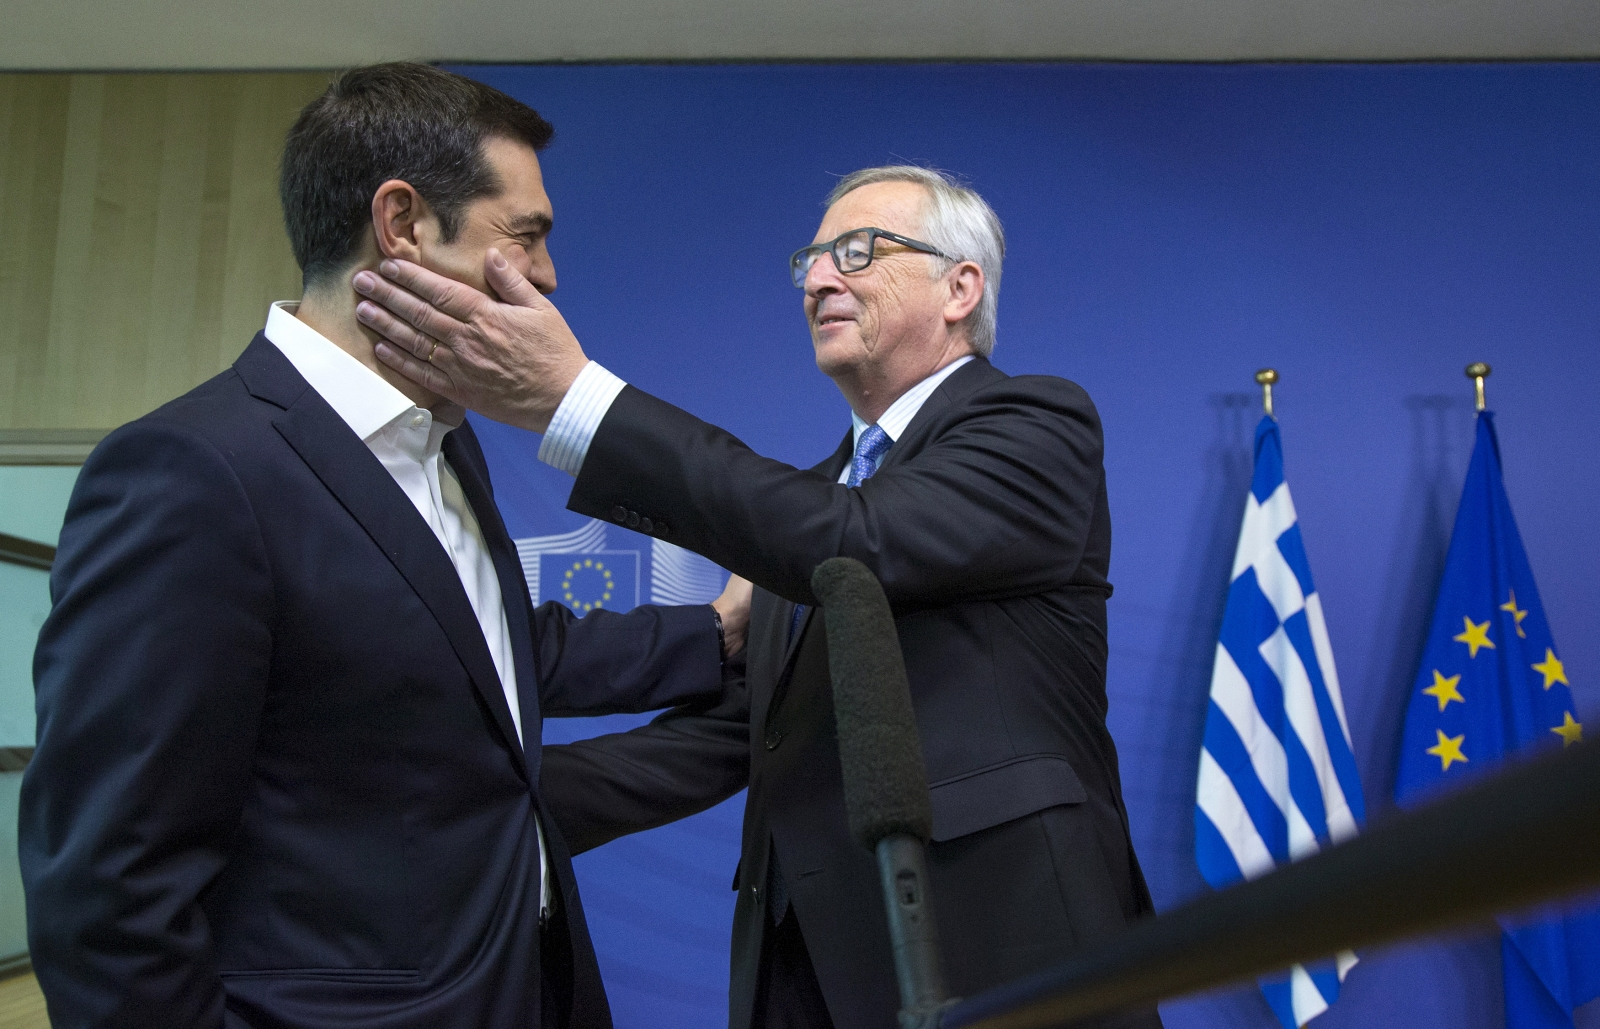 Greece debt crisis and Brussels summit